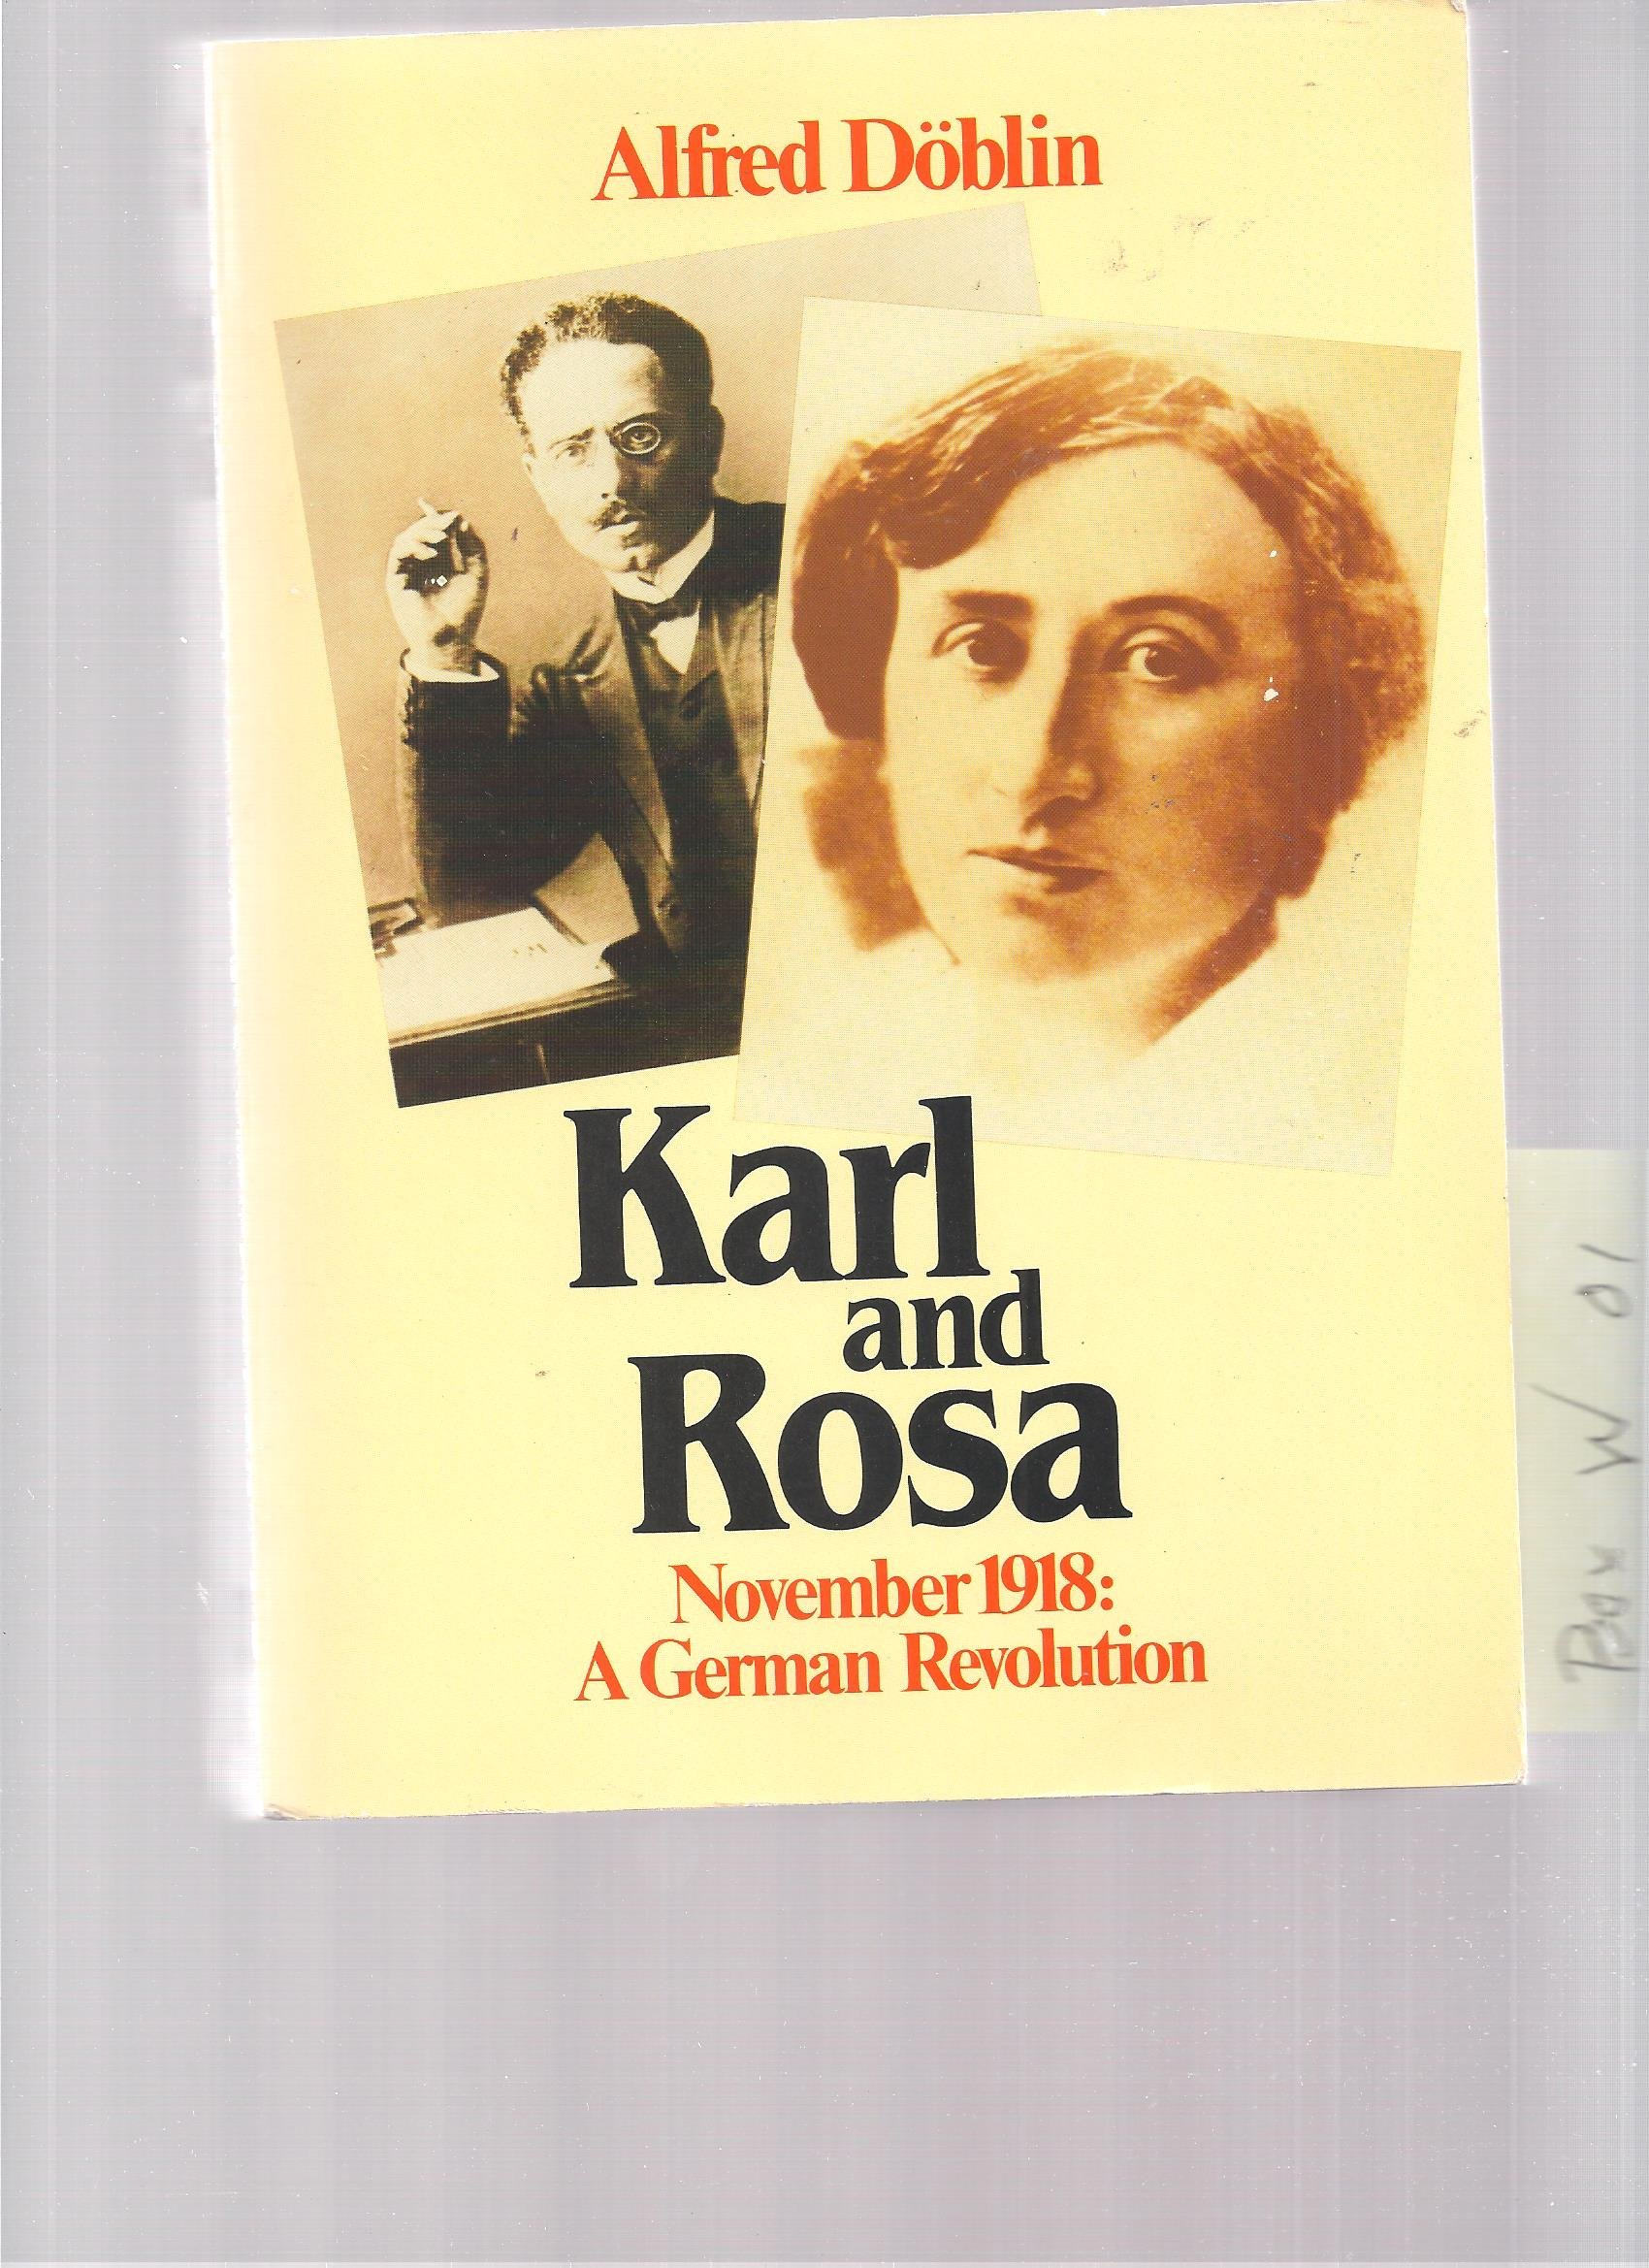 Karl and Rosa - November 1918: A German Revolution. Volume 3 (November  1918): Karl and Rosa Vol 3: Amazon.co.uk: Alfred Doblin, John E. Woods, J.  E. Woods: ...